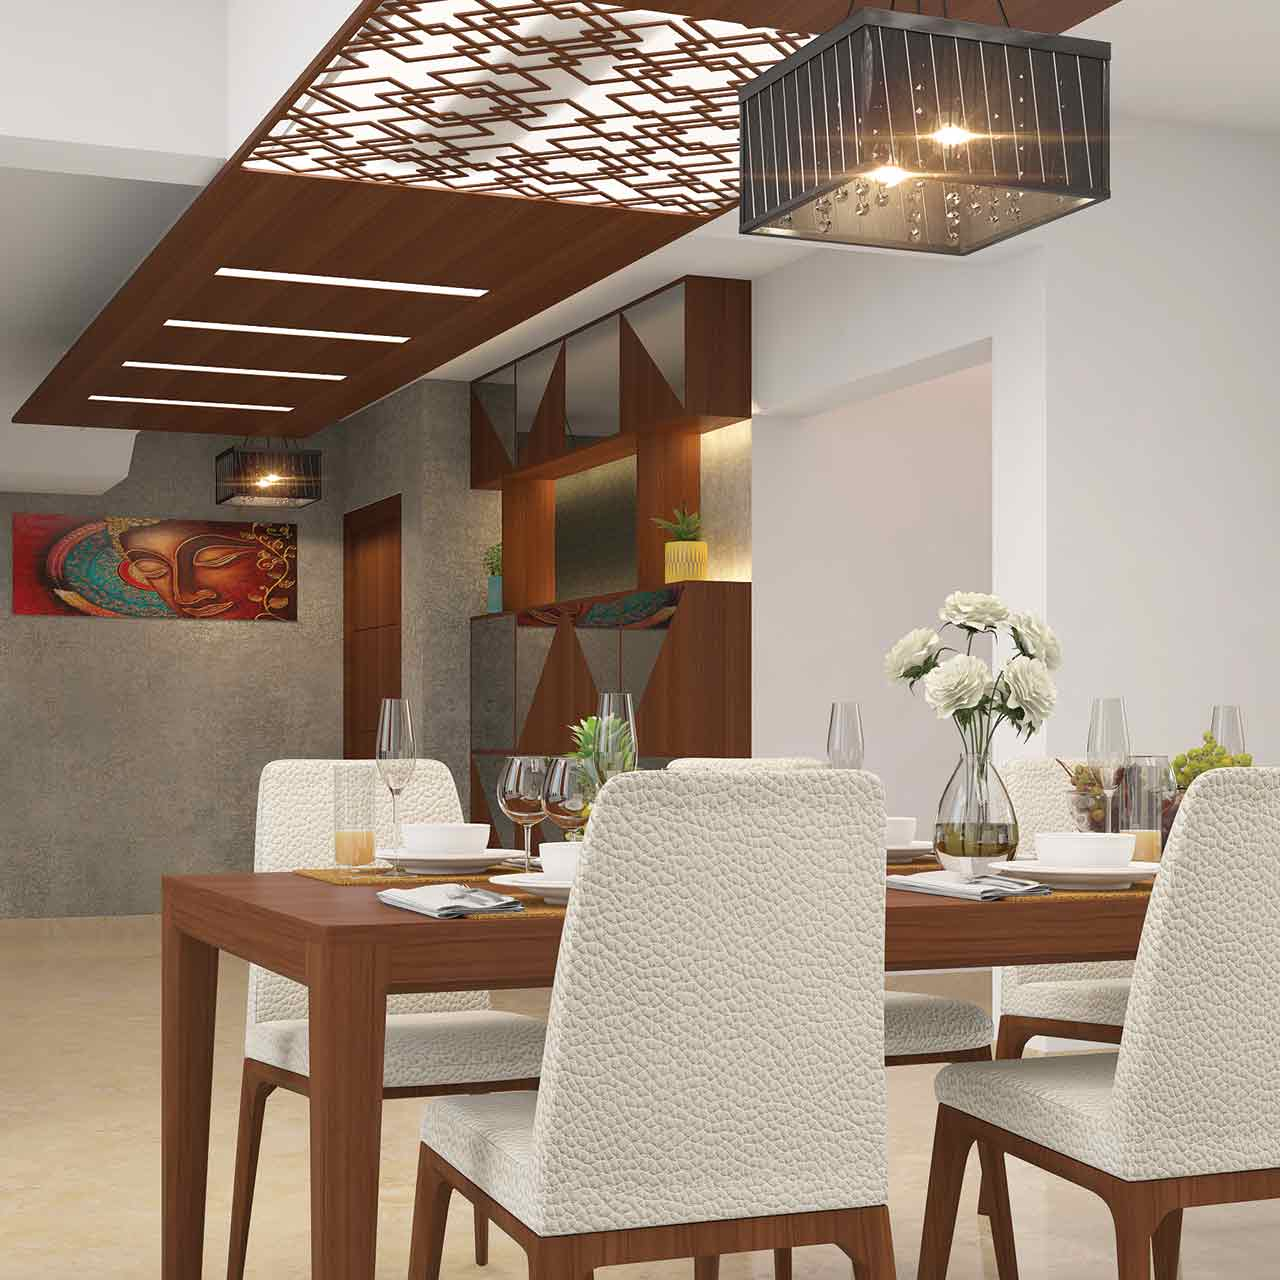 Dining room interior design where you can install a chandelier directly over the table of dining table in living room